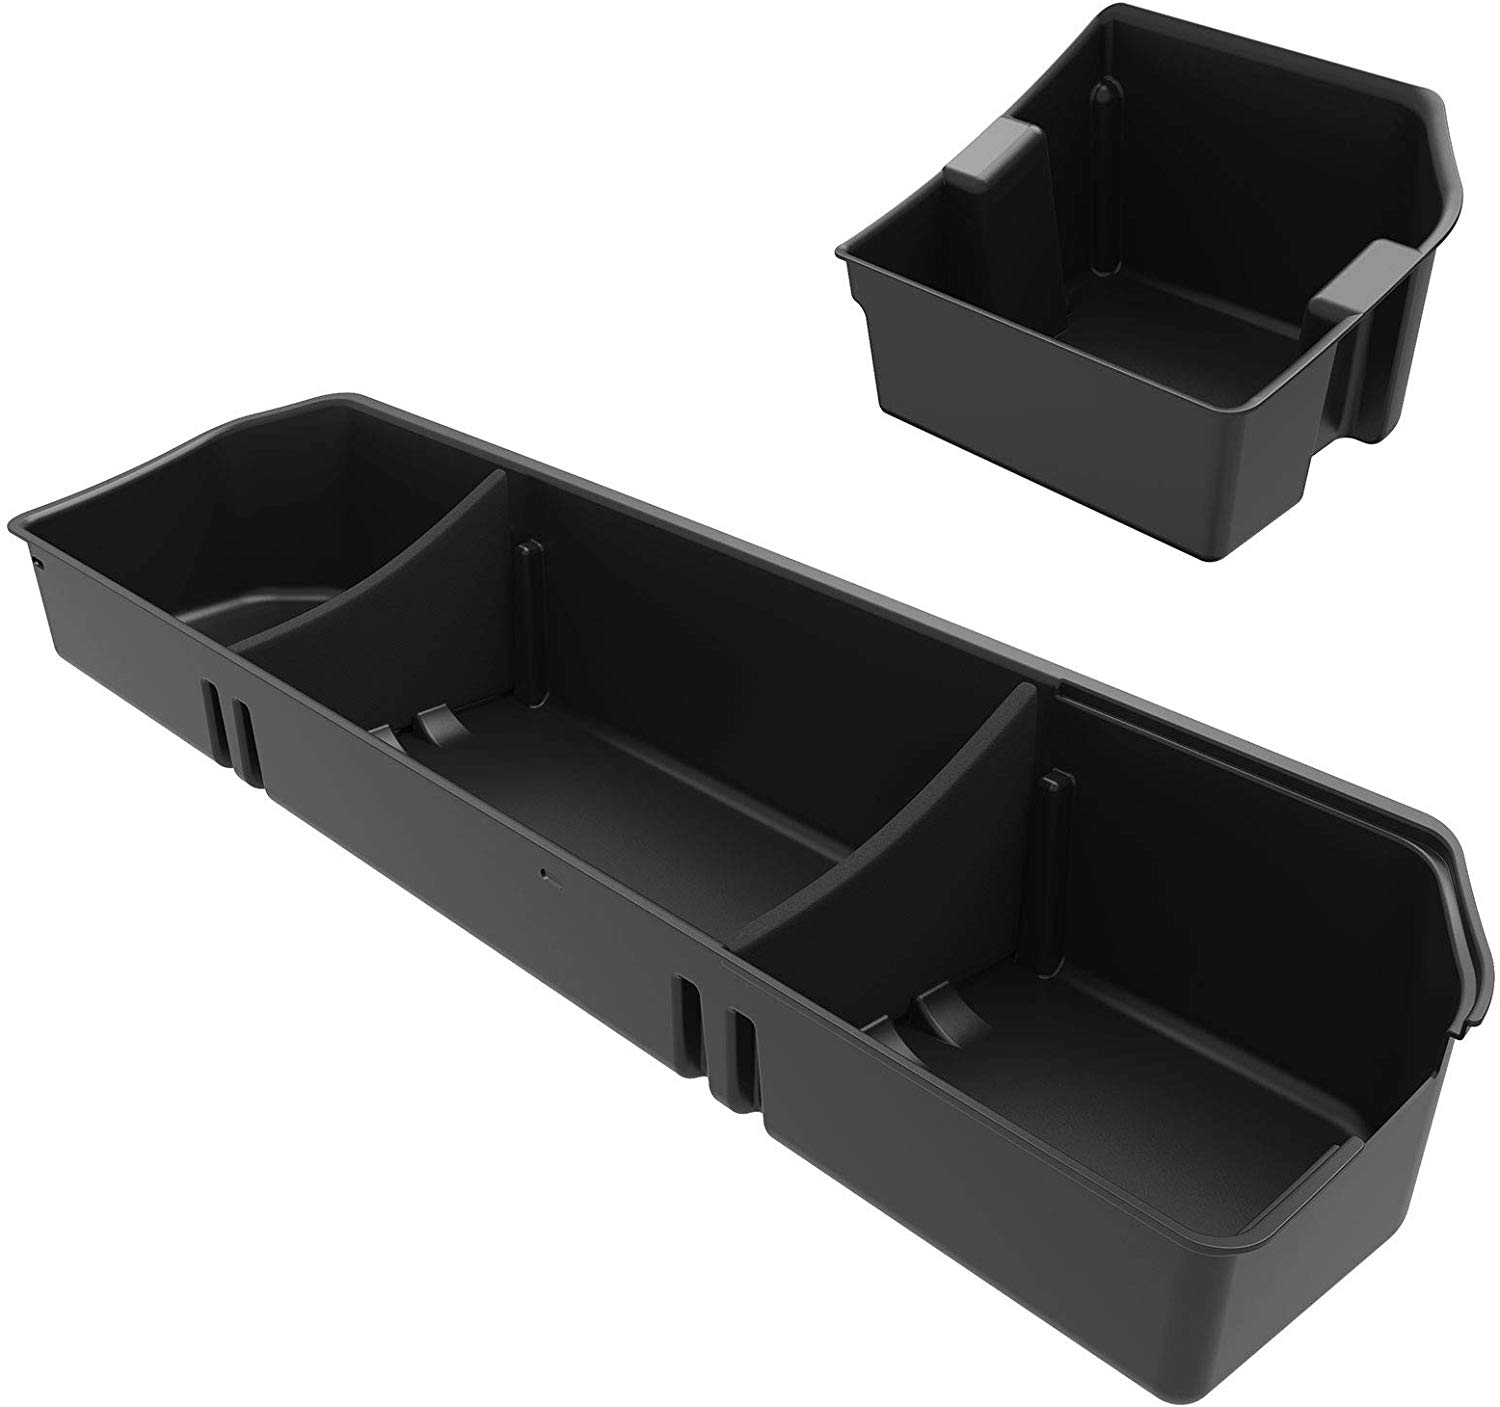 Top 10 Best Underseat Storages for Ford F150 in 2021 Reviews